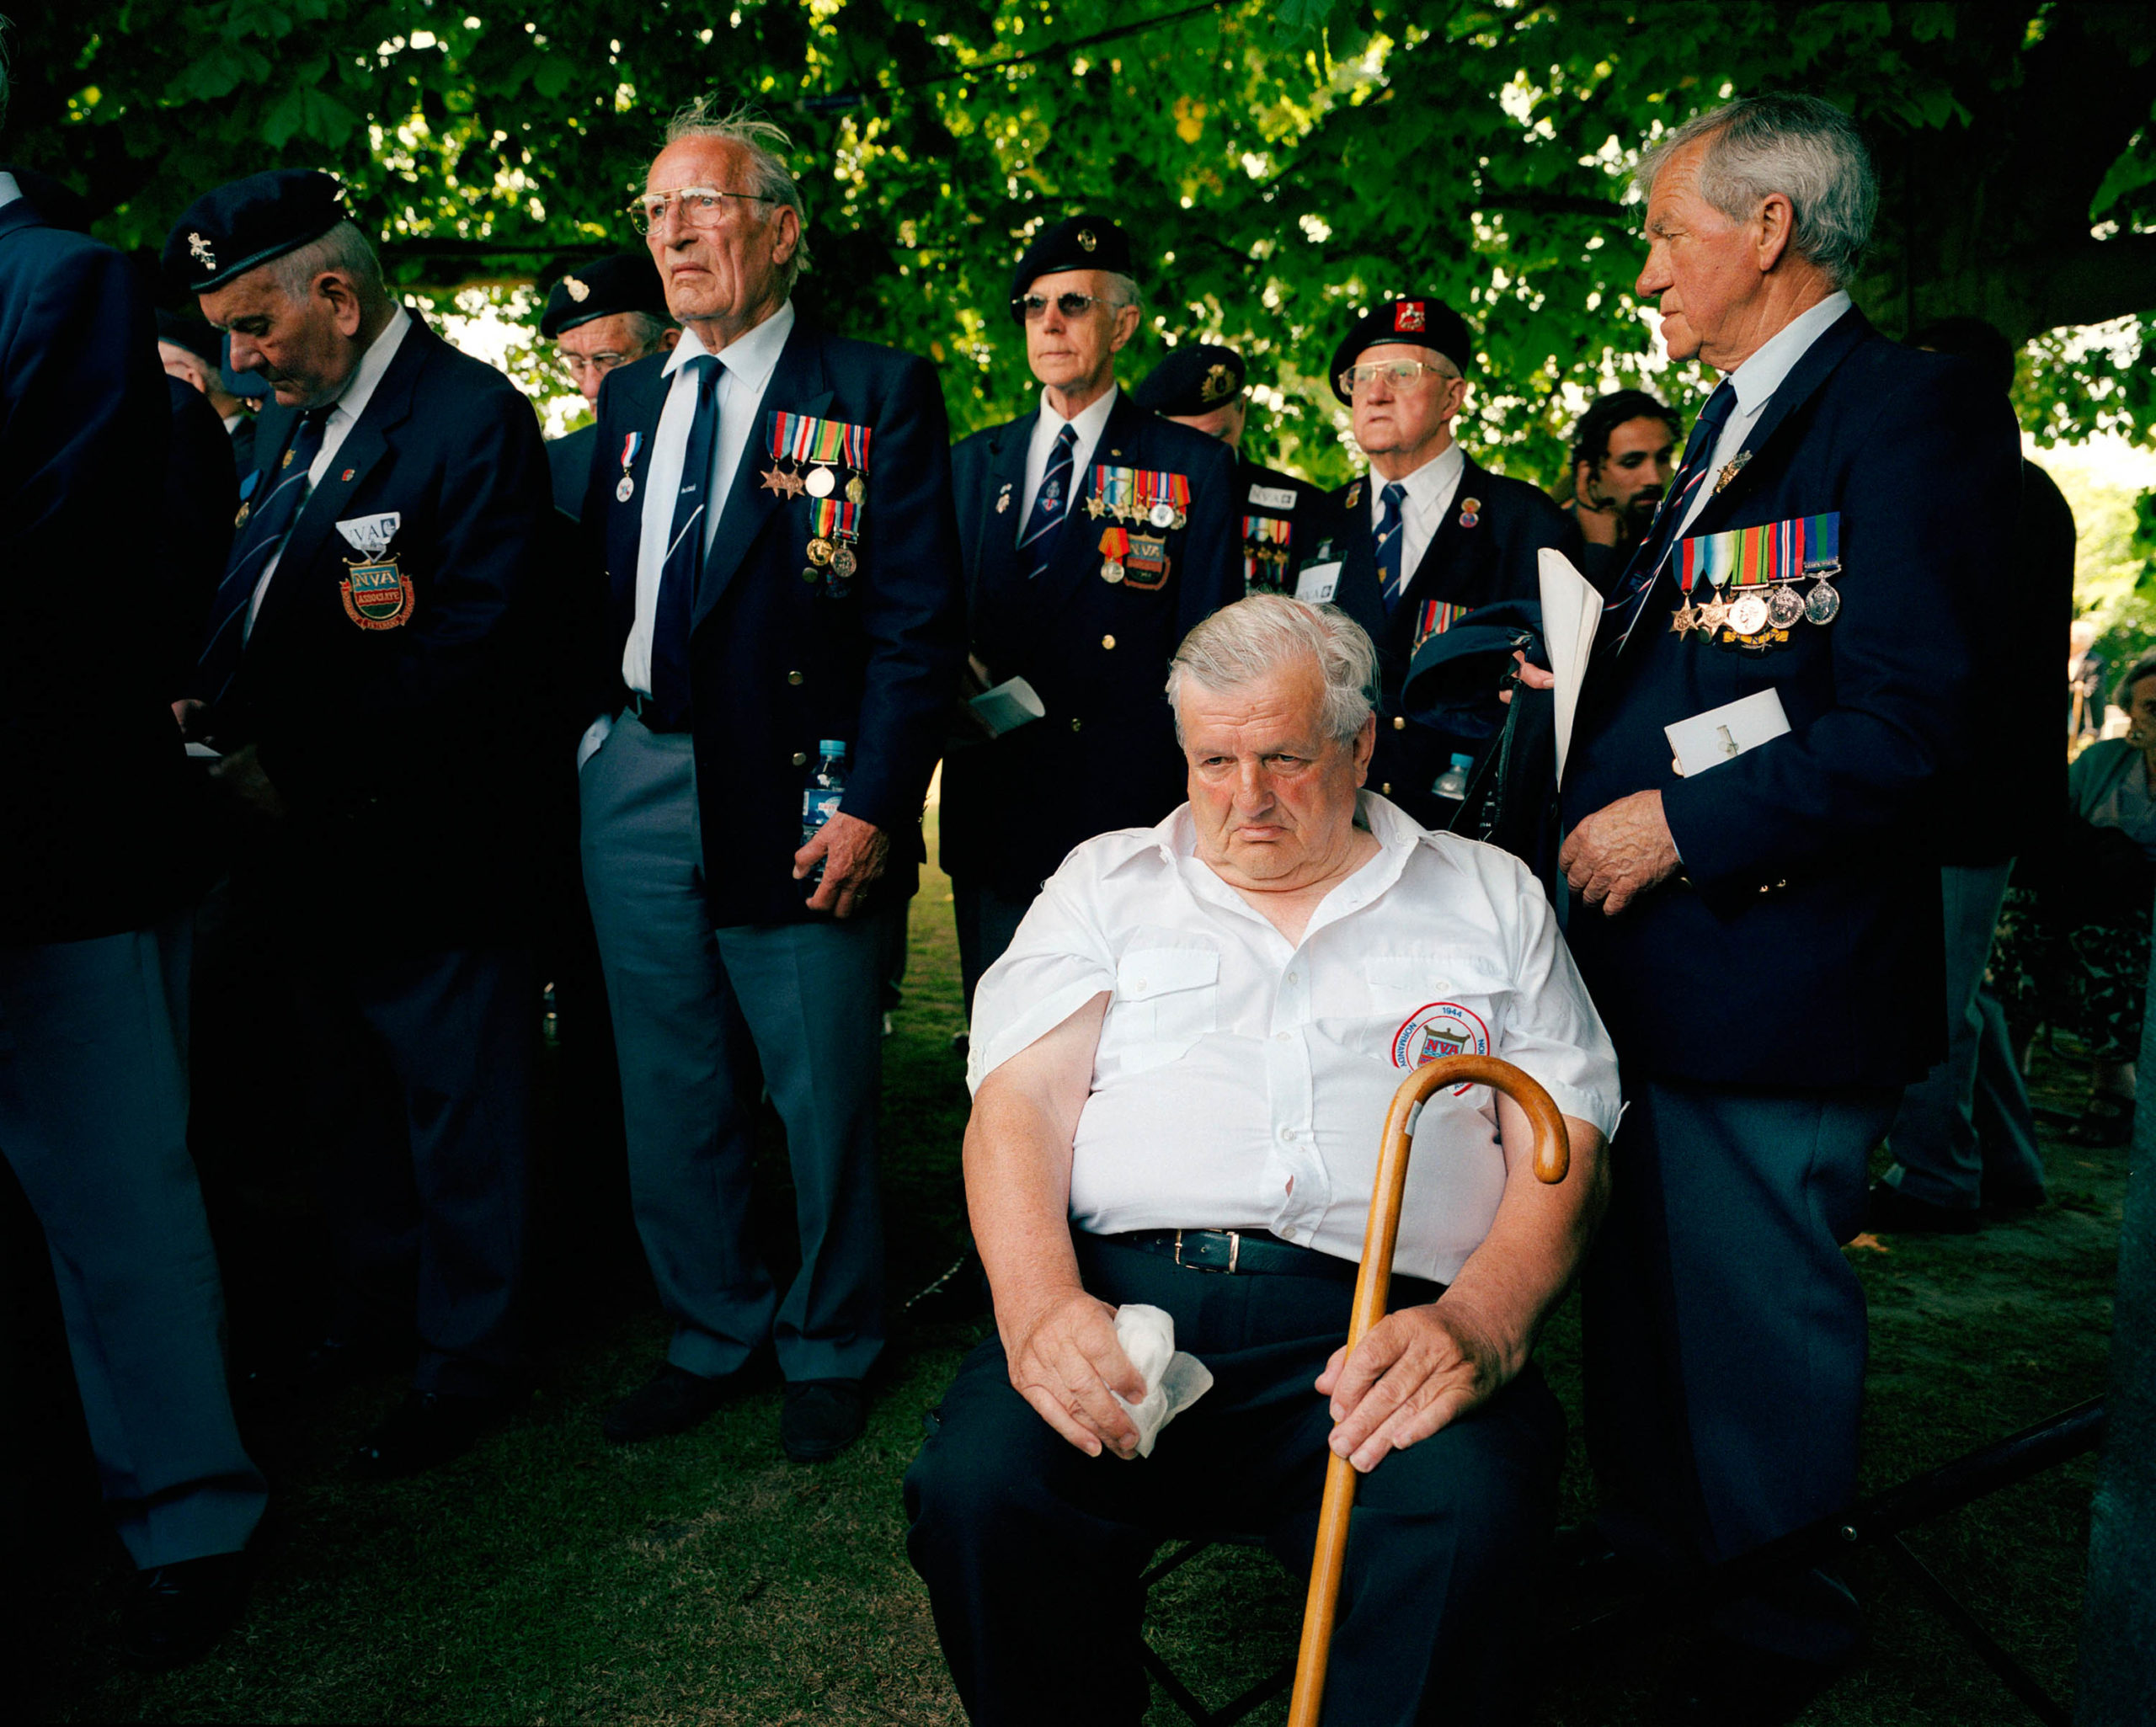 Normandy, Bayeux. D-Day celebrations. British veterans remember their dead at the war cemetery.